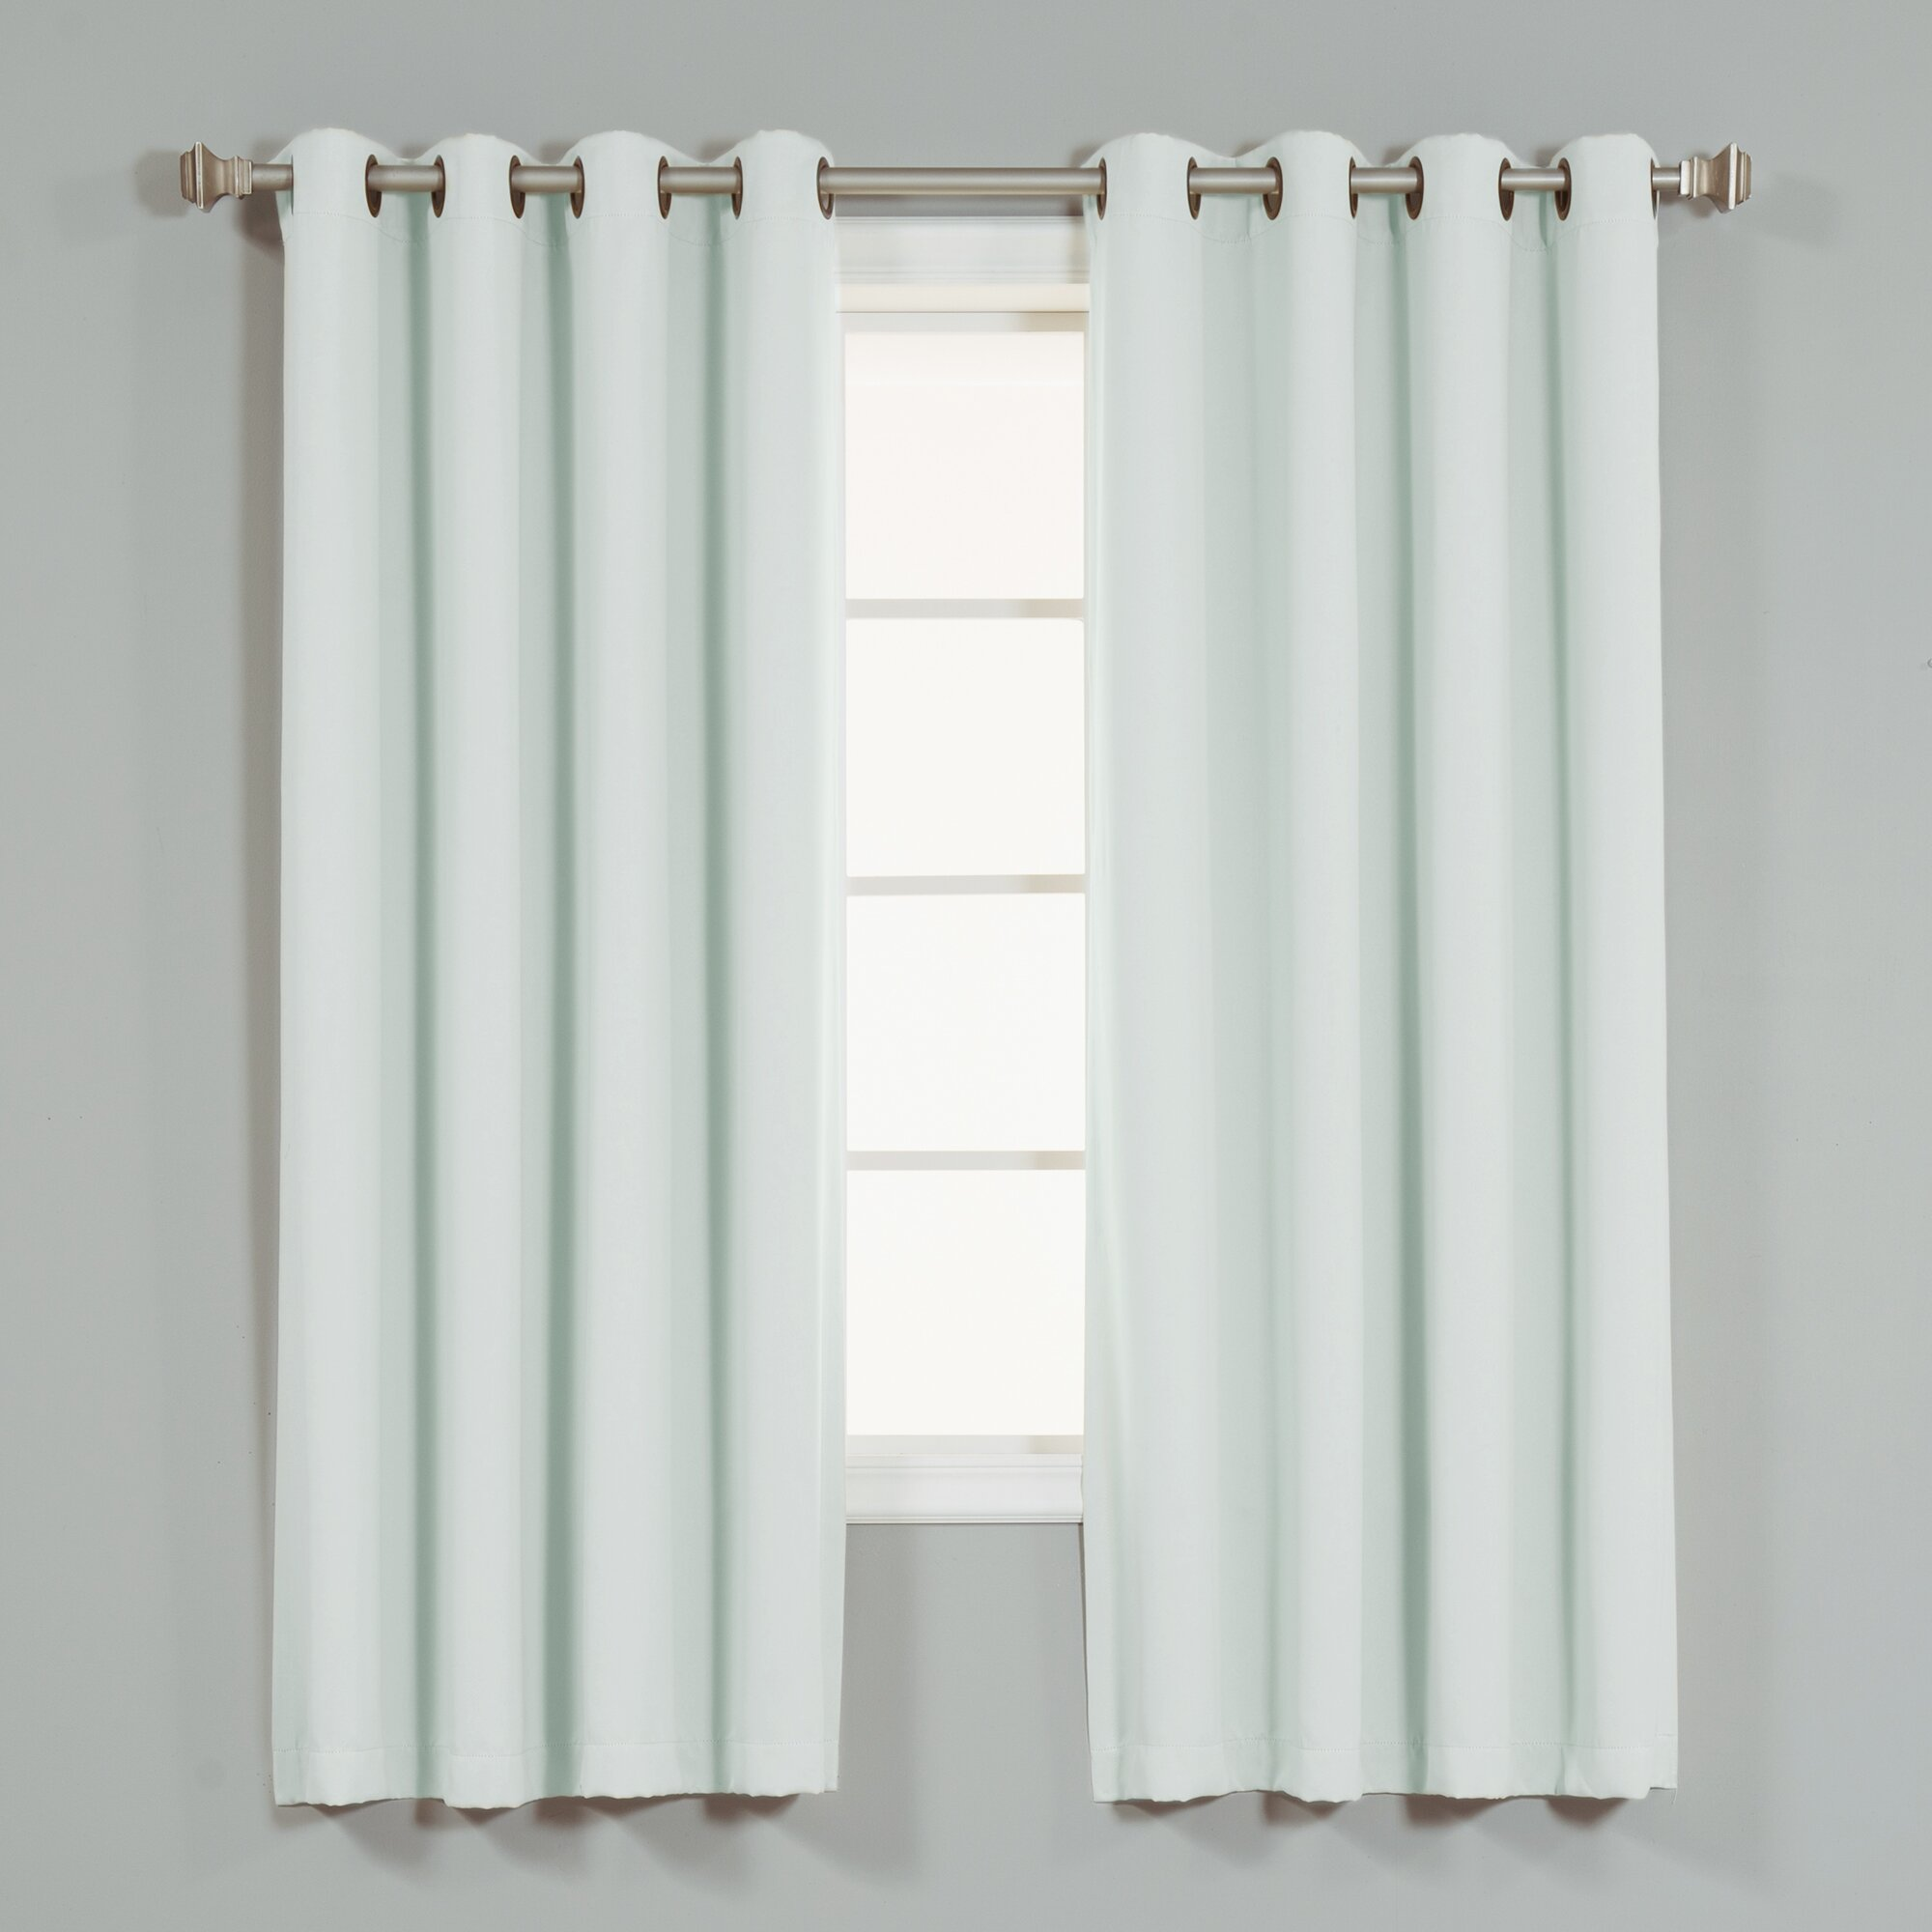 red barrel studio fairhaven basic blackout thermal curtain panels